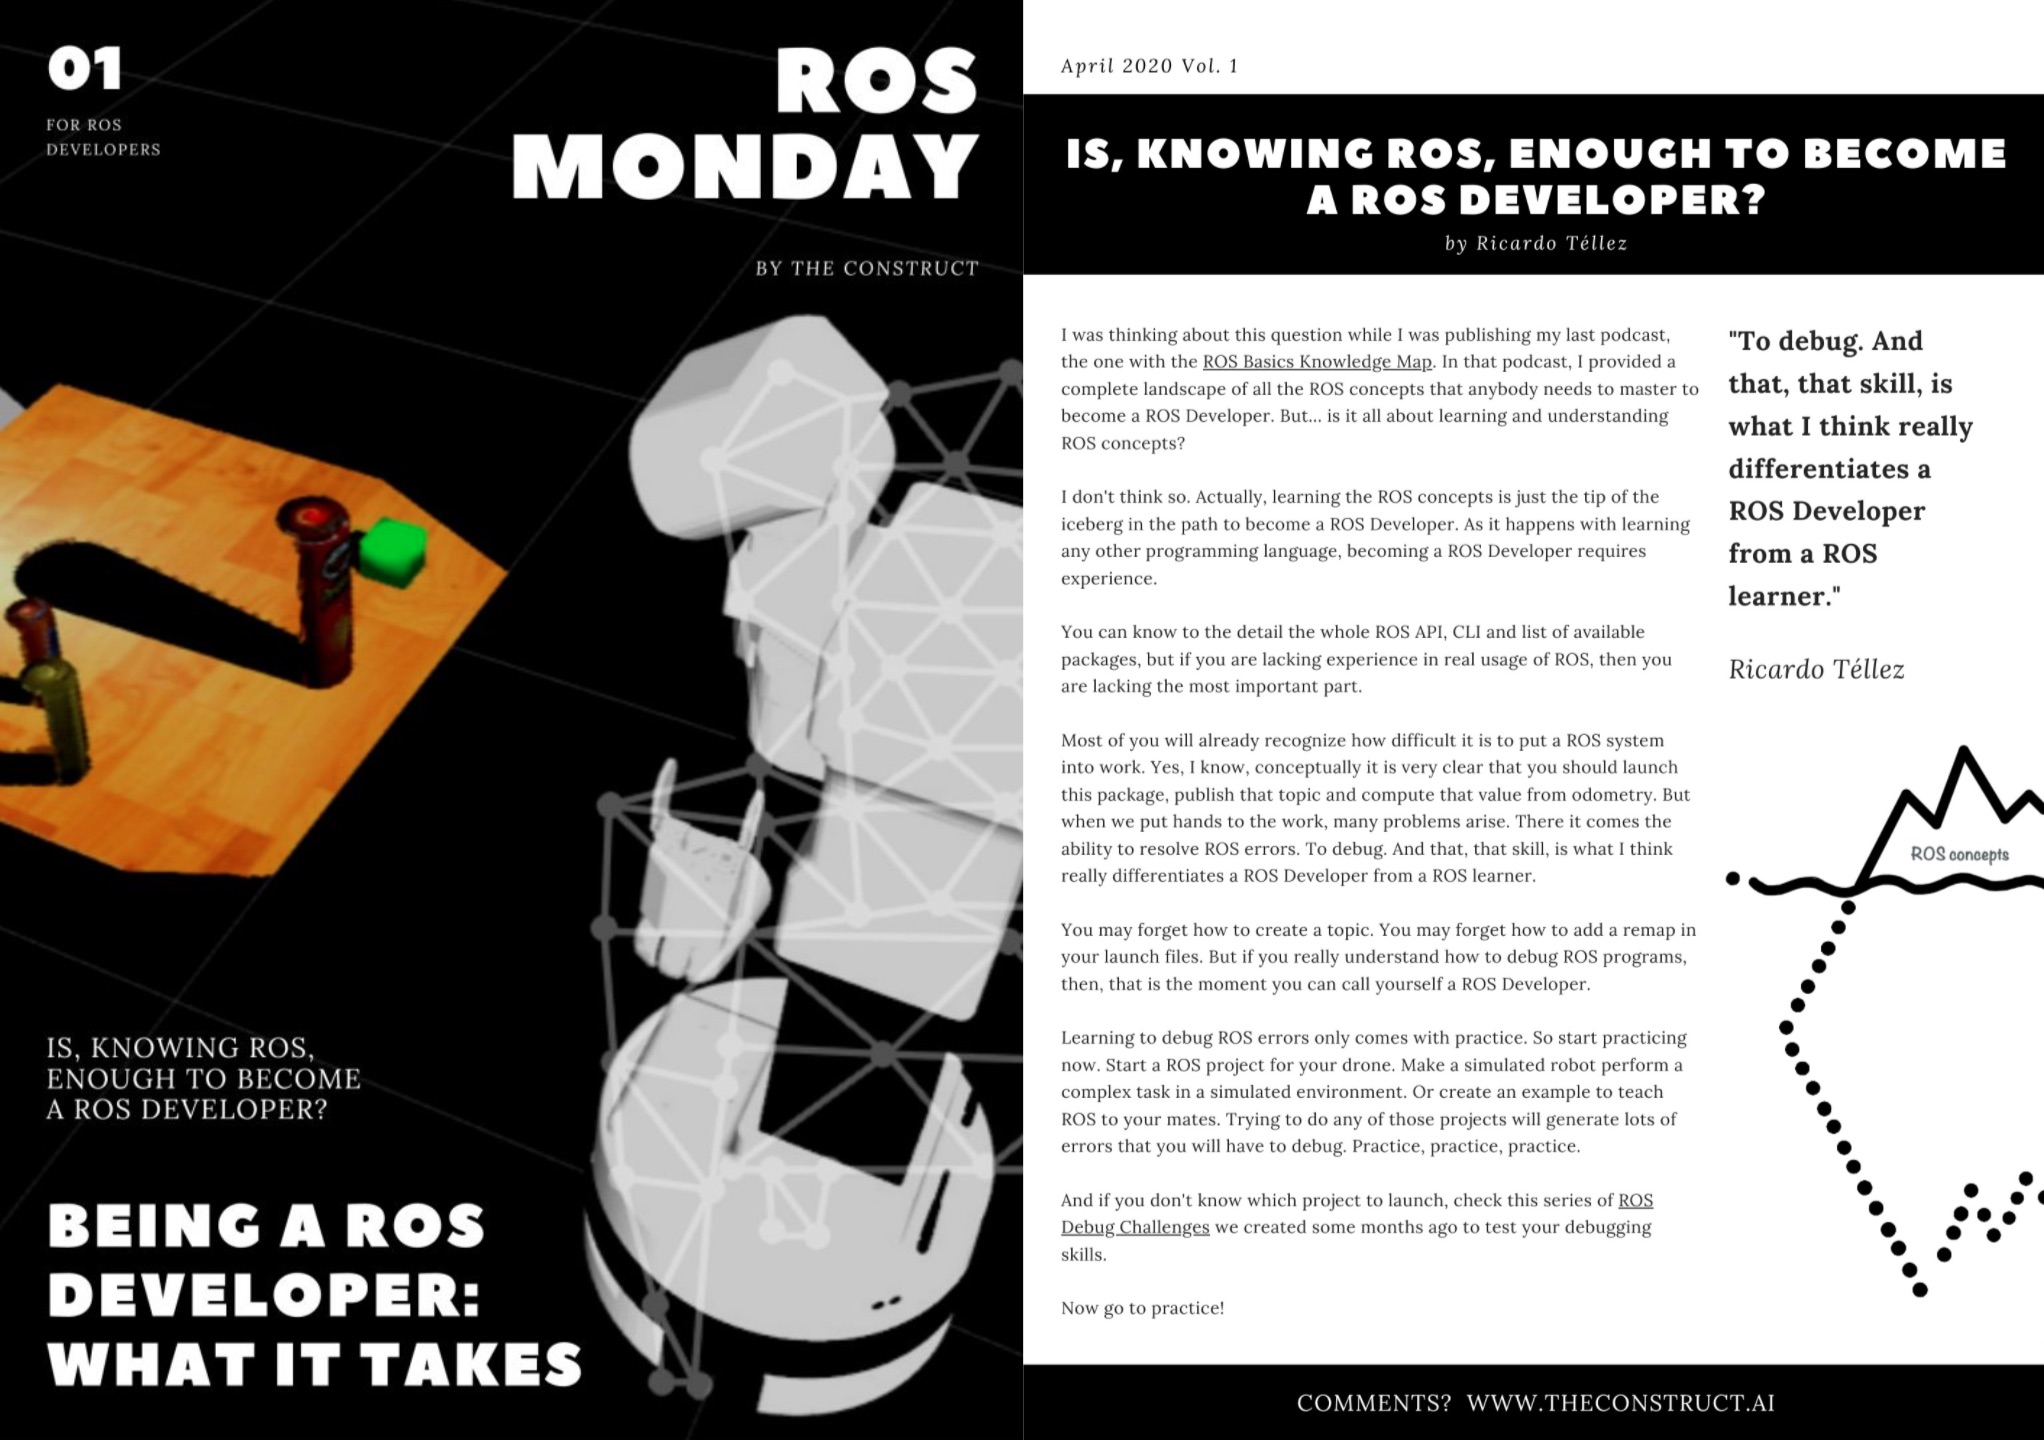 ROS Monday Vol.1 – Being a ROS Developer: what it takes